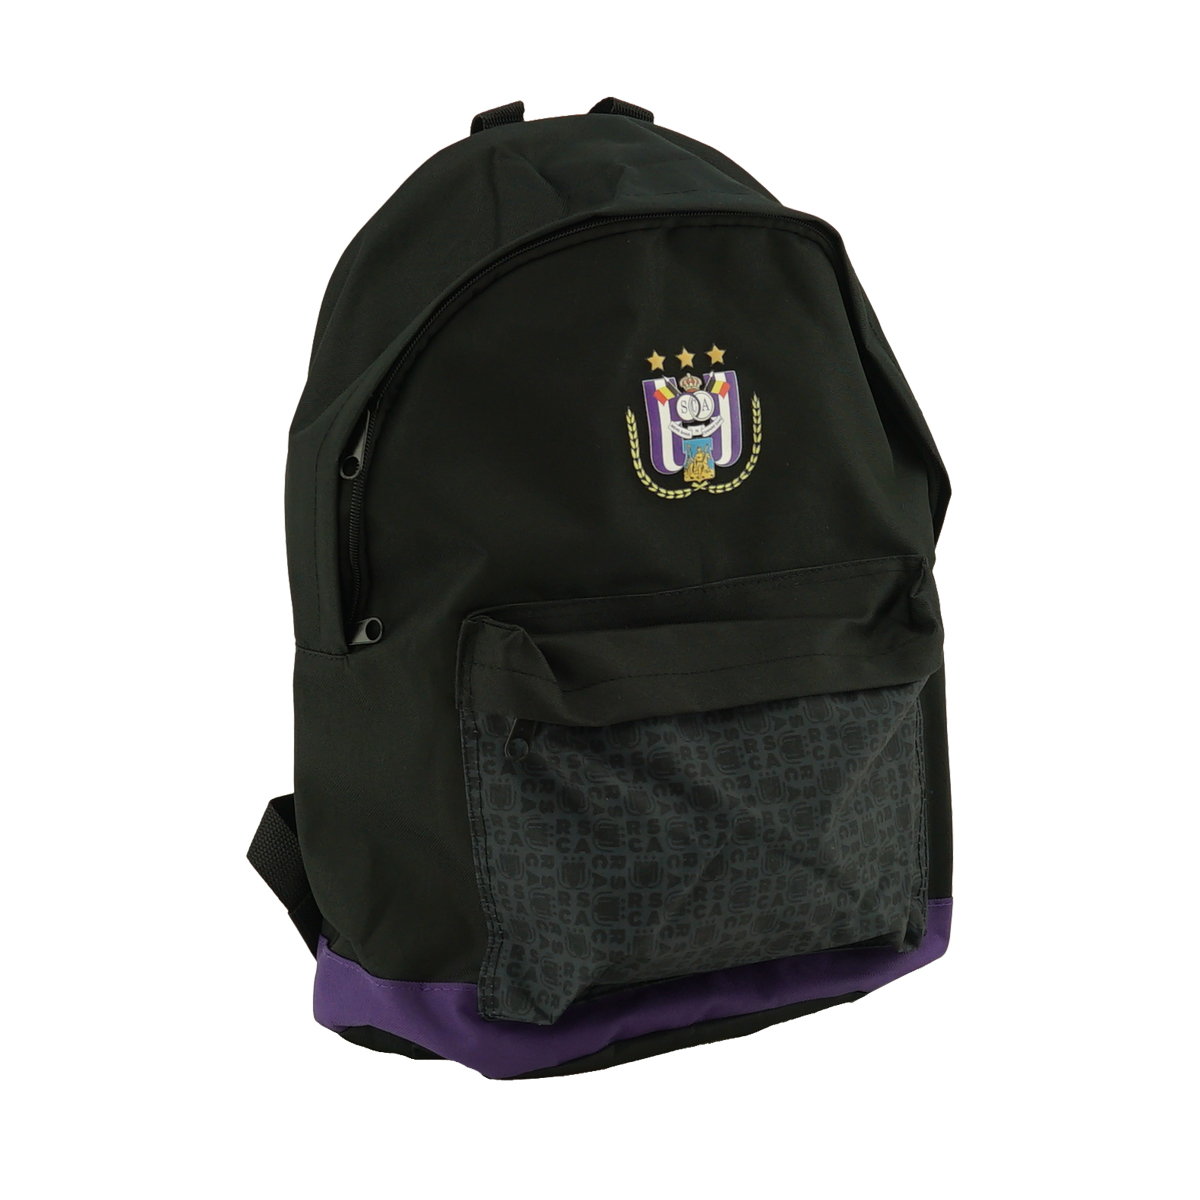 RSCA Backpack Motif